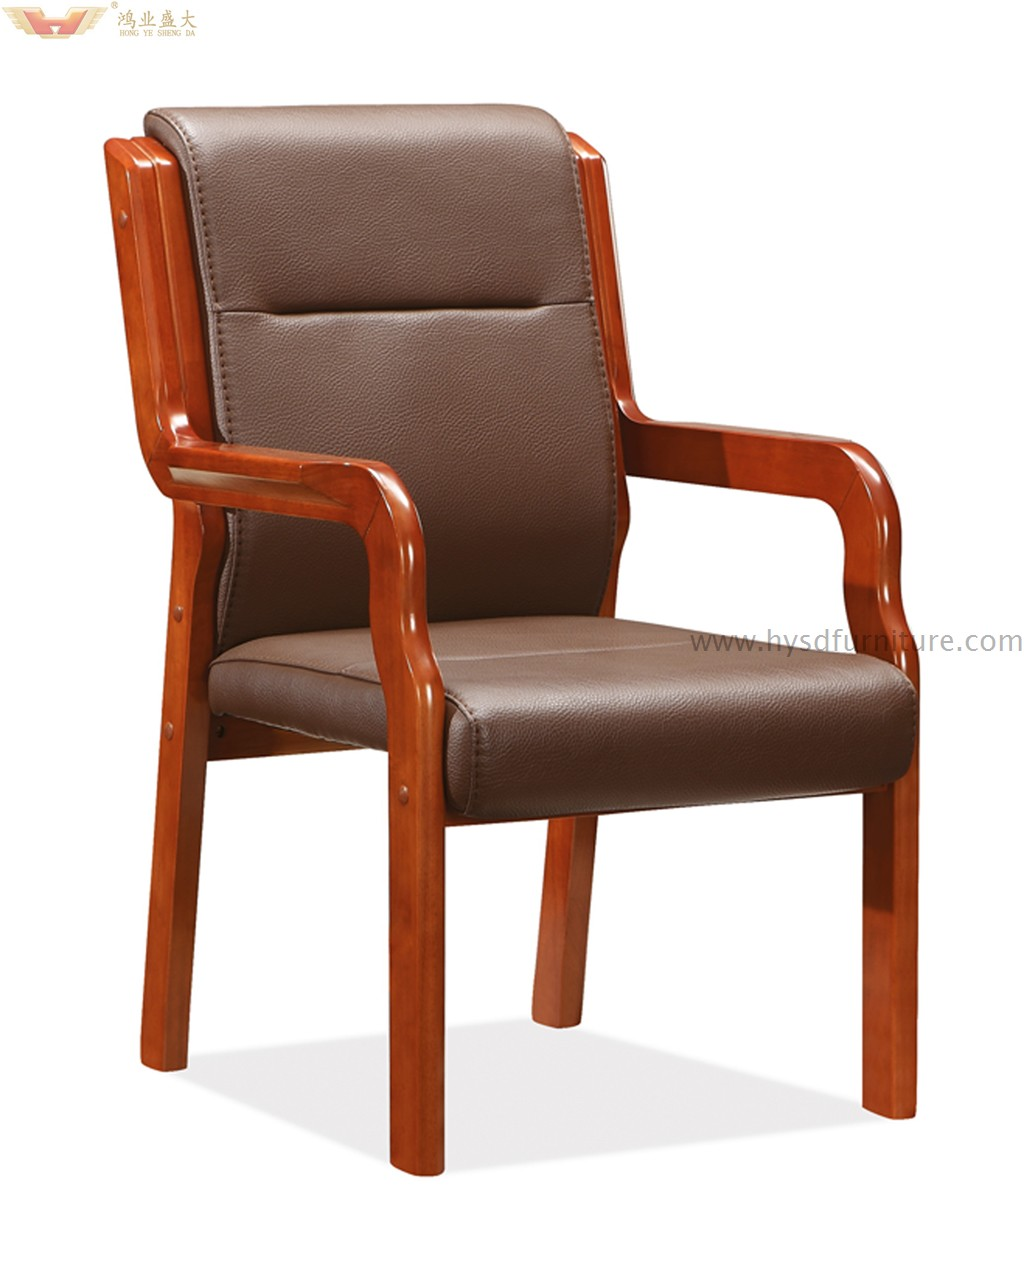 conference room chairs without wheels upholster dining chair  page 5 hongye shengda office